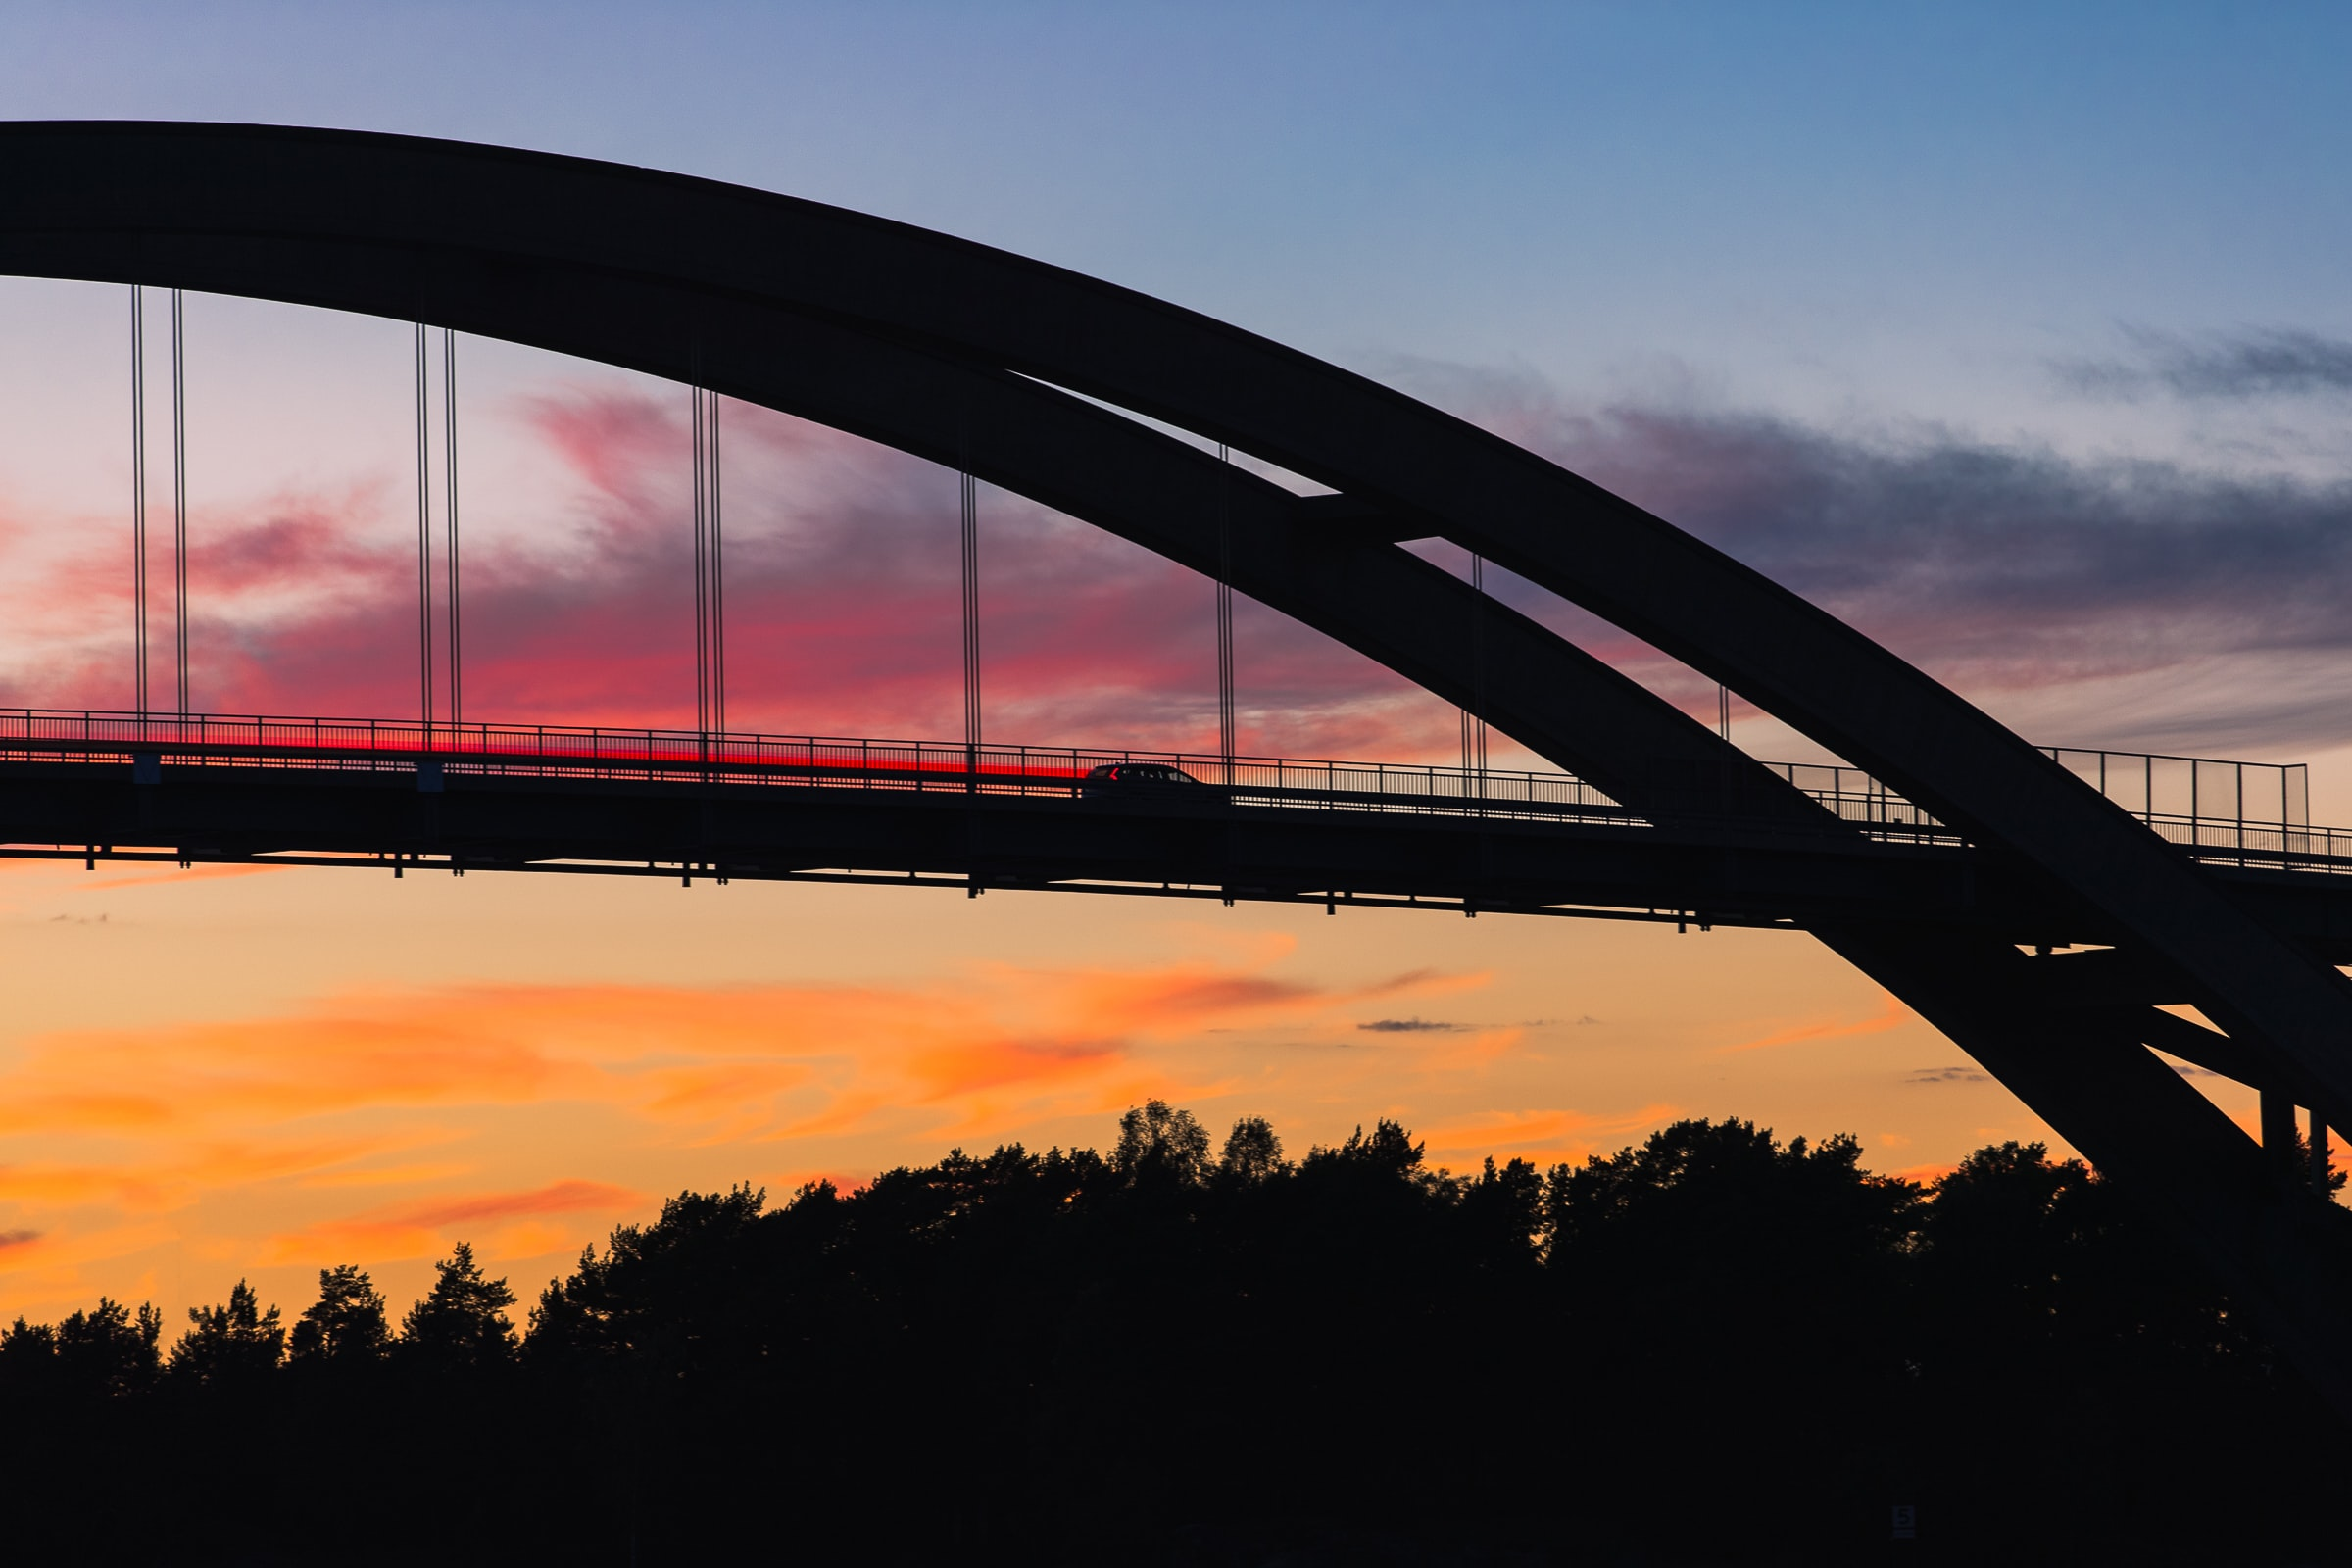 Arched bridge silhouetted against a colorful sunset